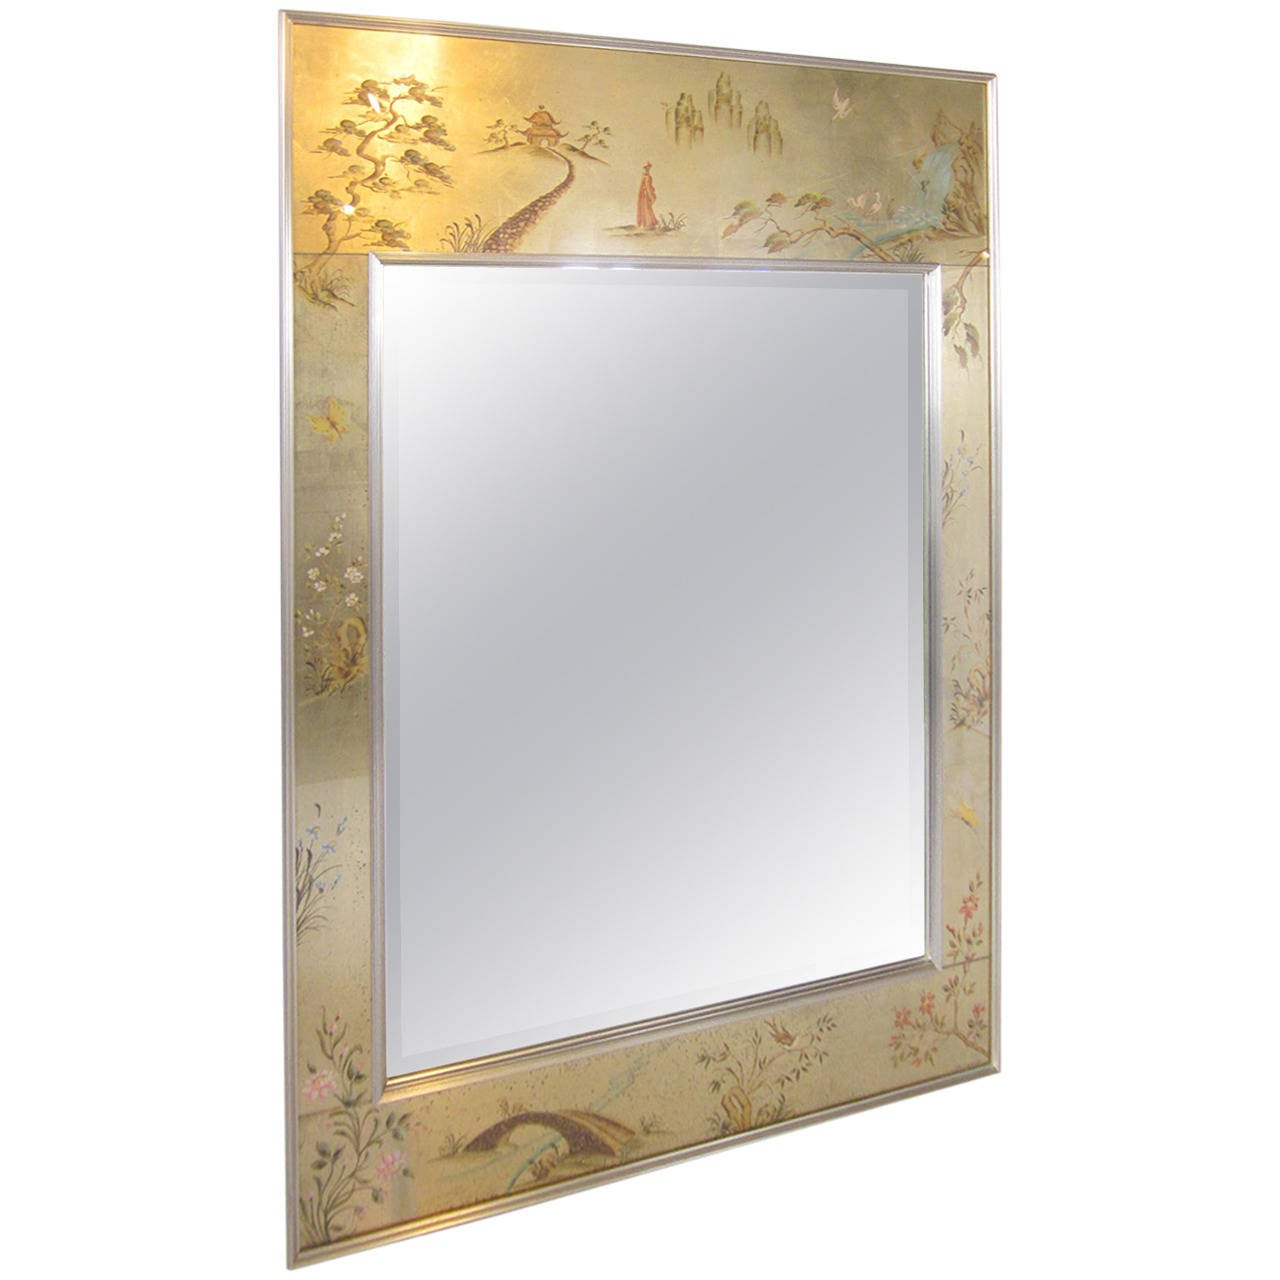 La Barge Chinoiserie Mirror For Sale At 1stdibs